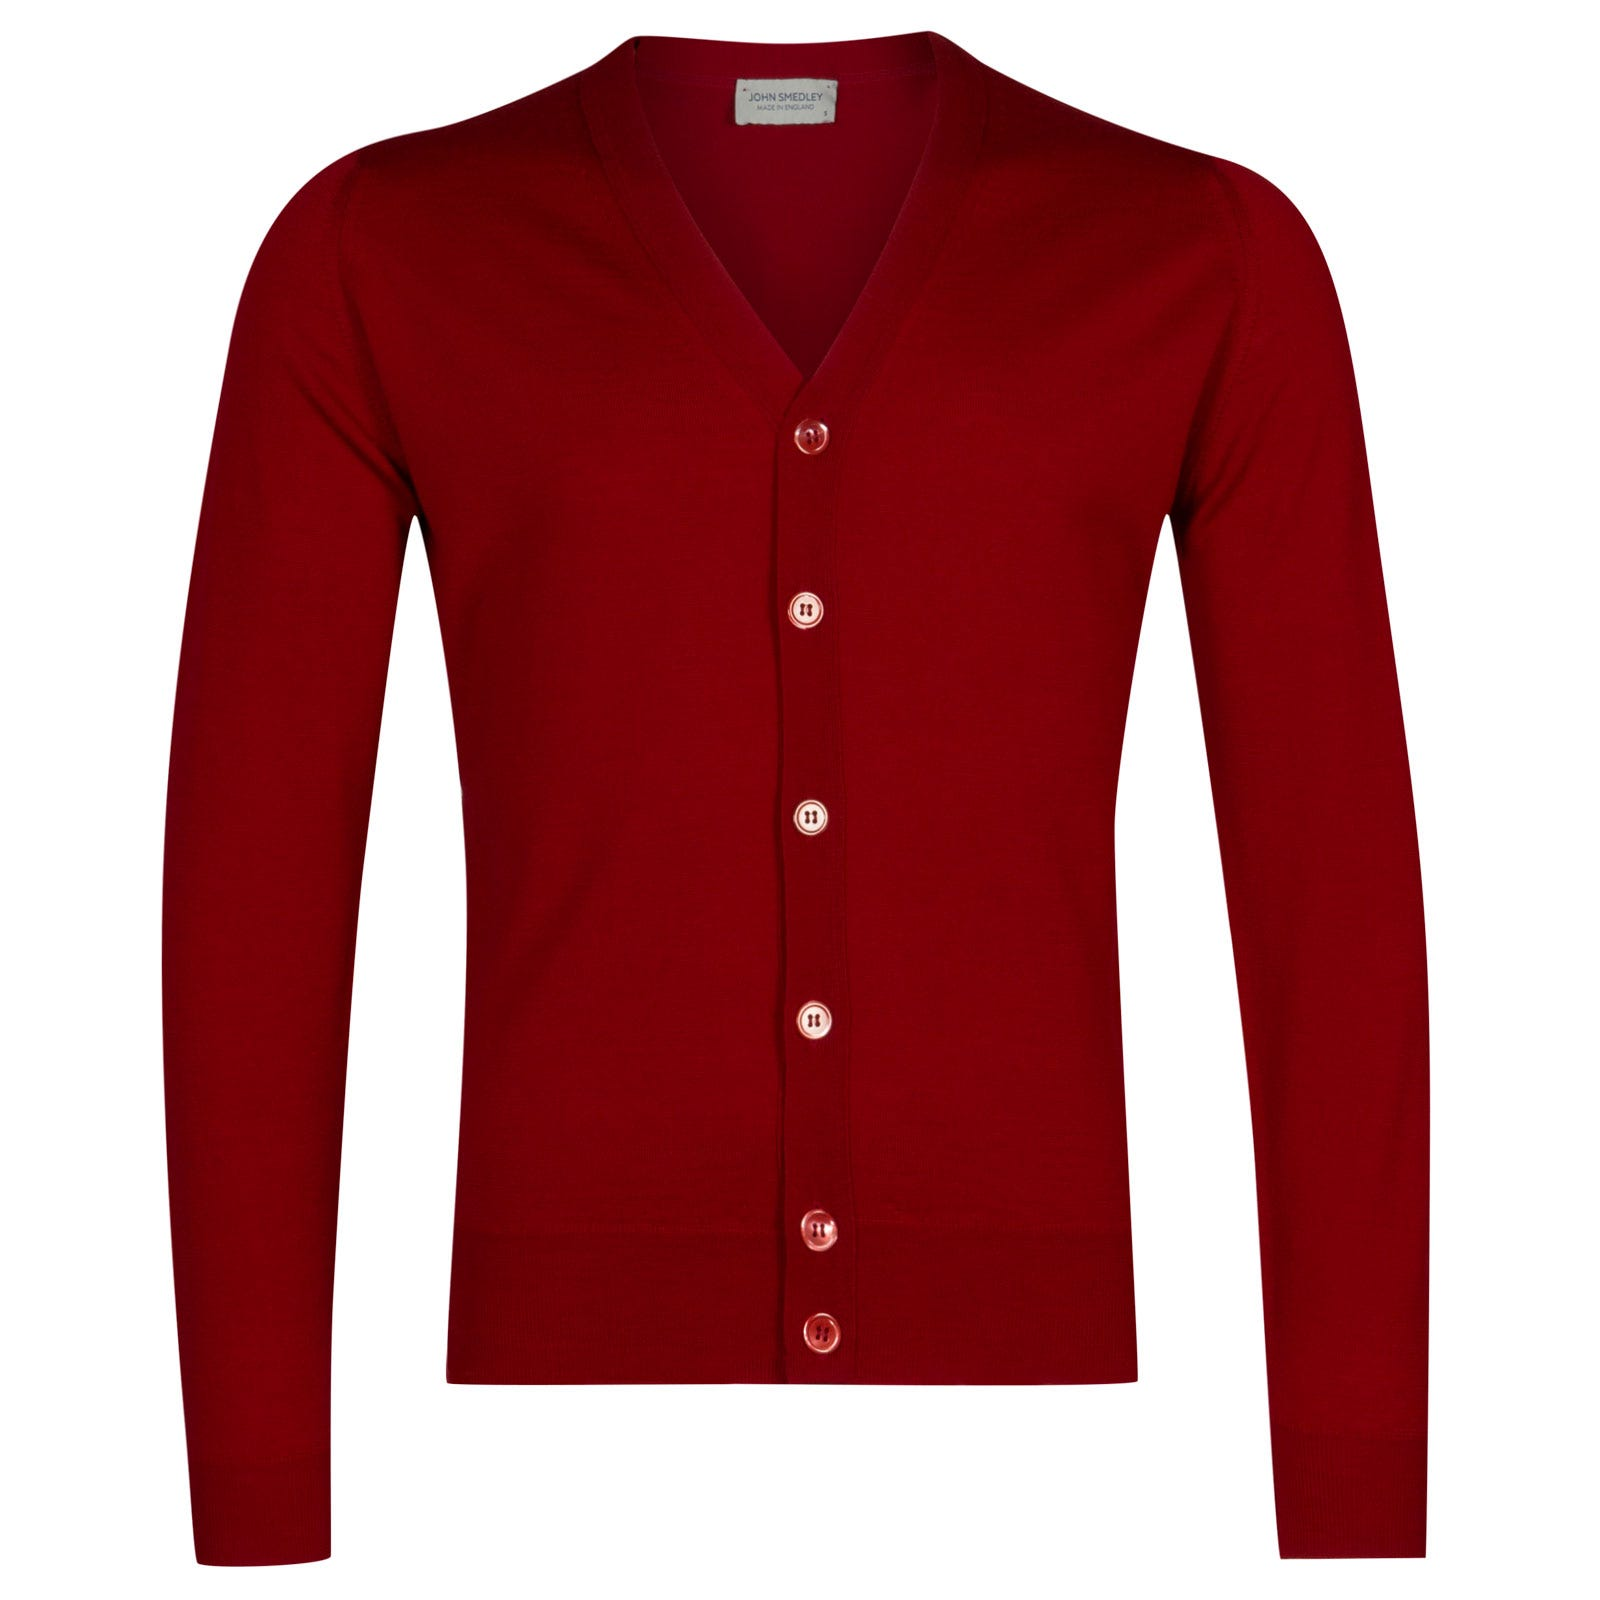 John Smedley naples Merino Wool Cardigan in Crimson Forest-M